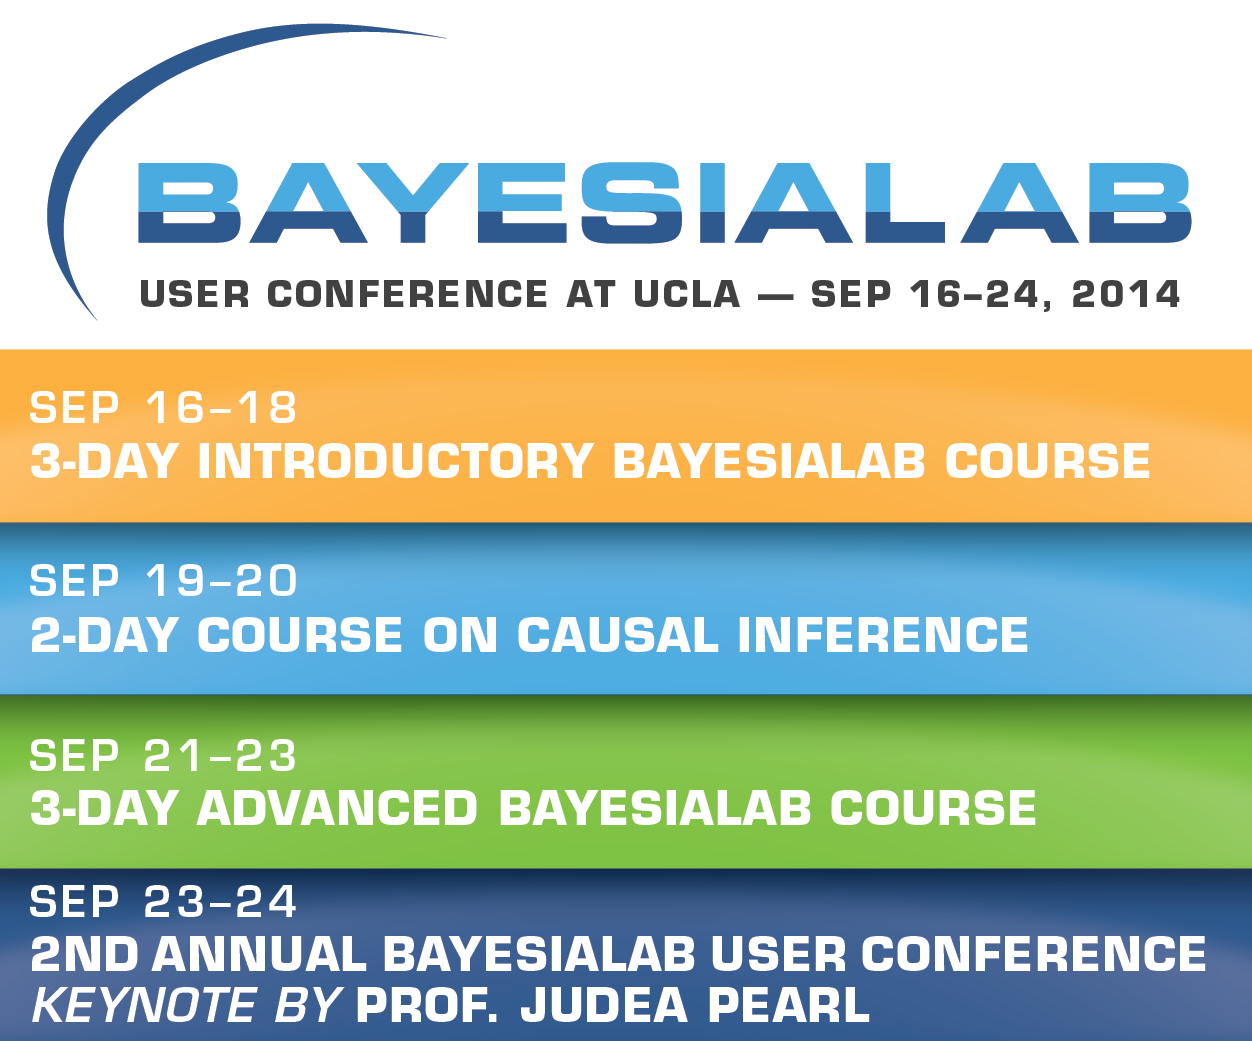 BayesiaLab User Conference at UCLA